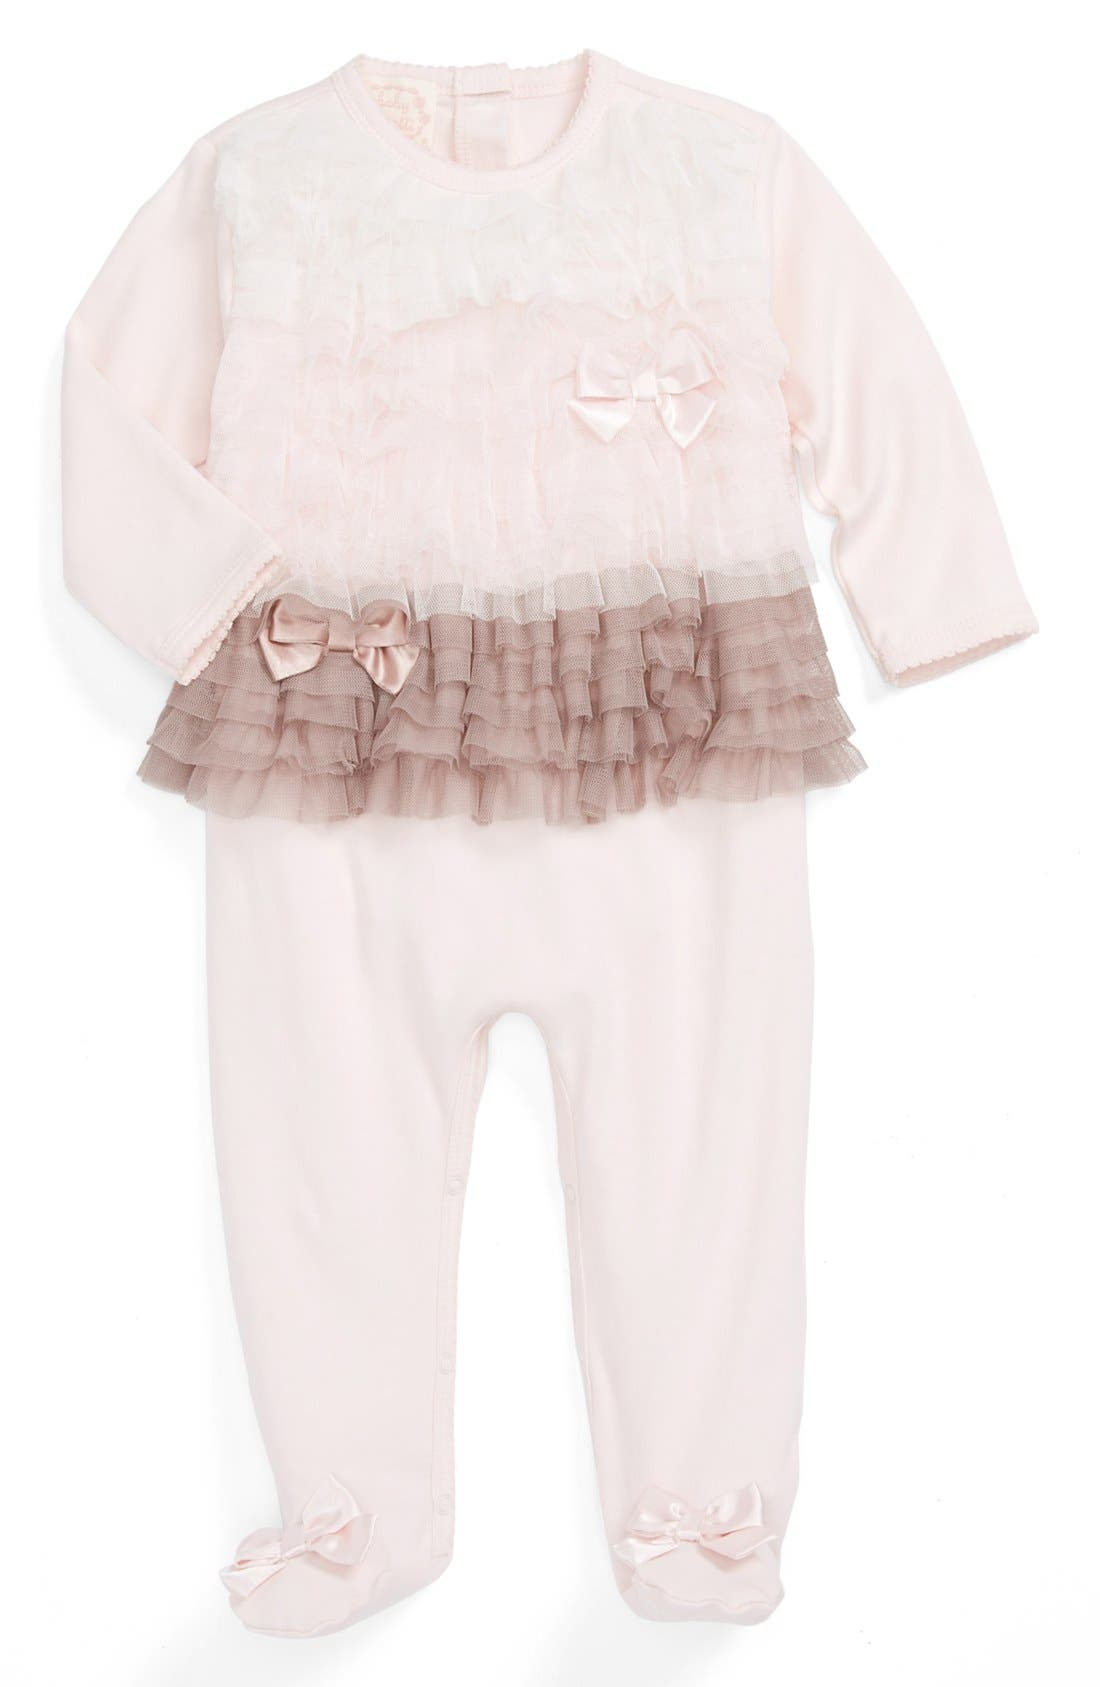 Alternate Image 1 Selected - Biscotti One-Piece (Baby Girls)